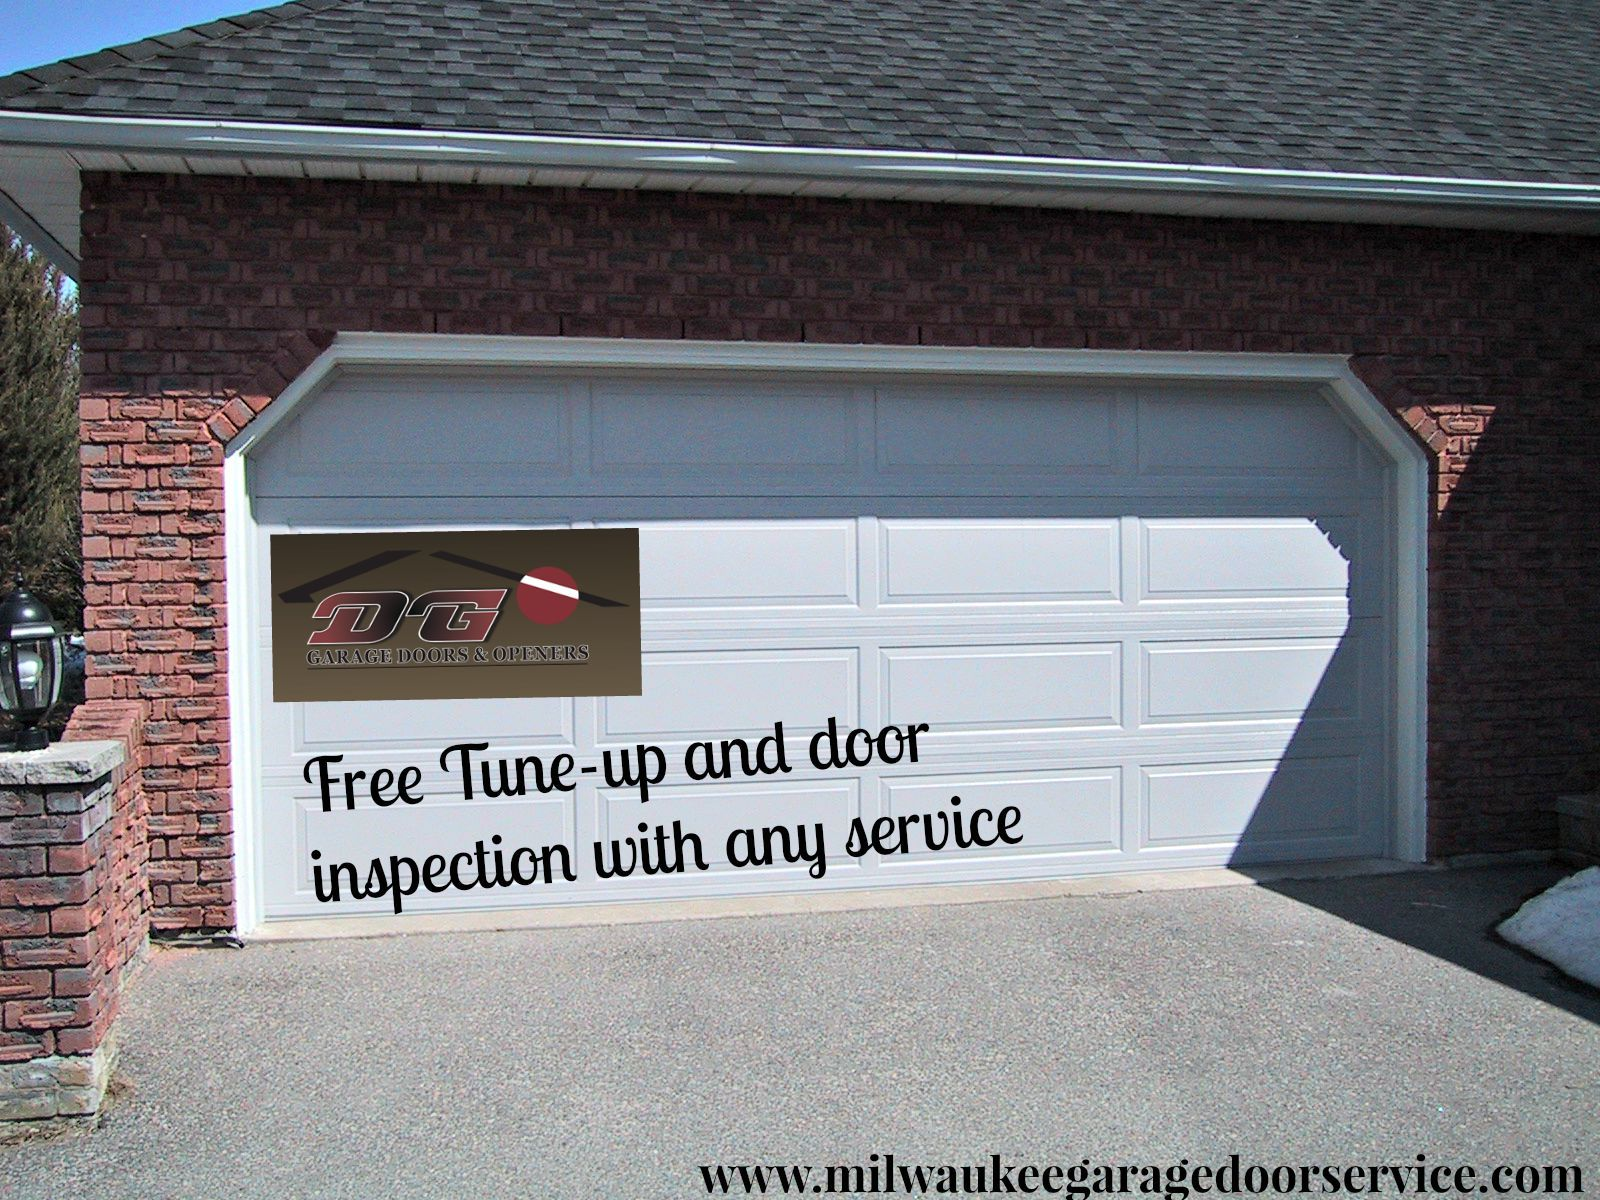 Our Expert Garage Door Service Experts Are Available 247 To Provide